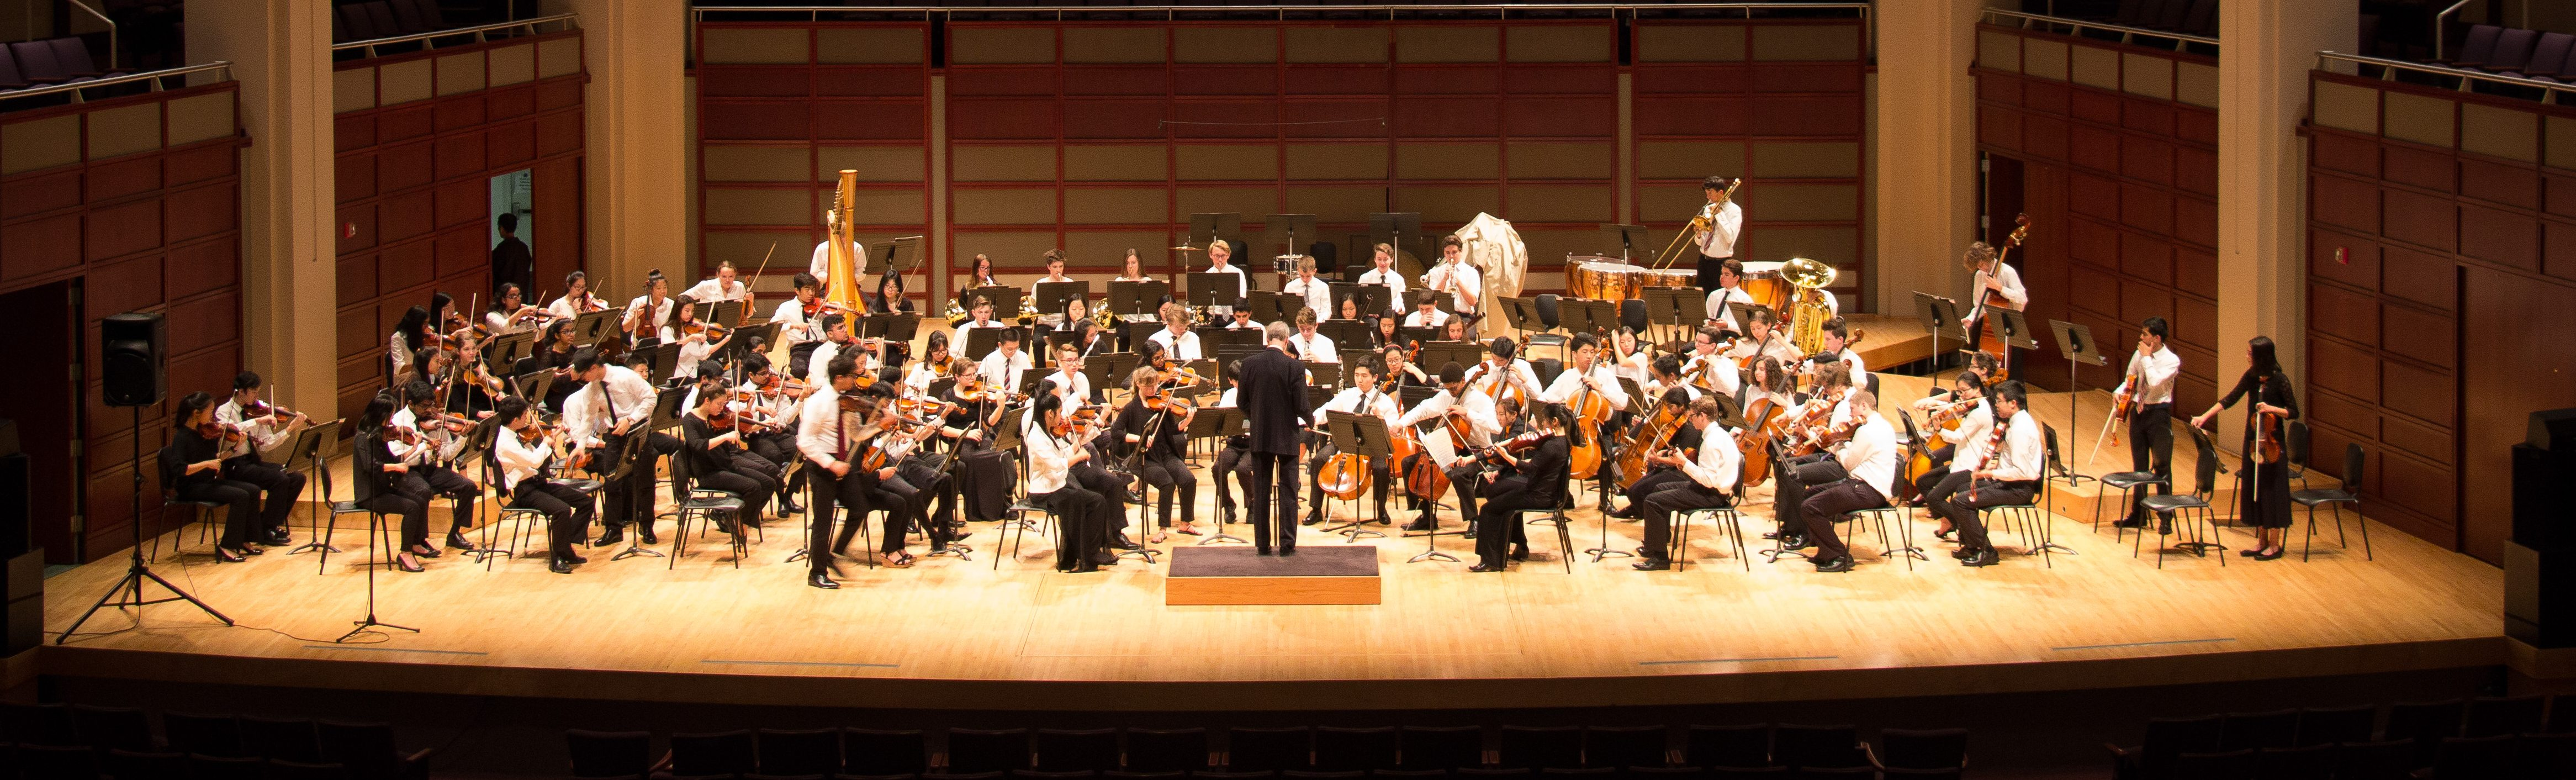 photo of entire triangle youth philharmonic on stage during a performance